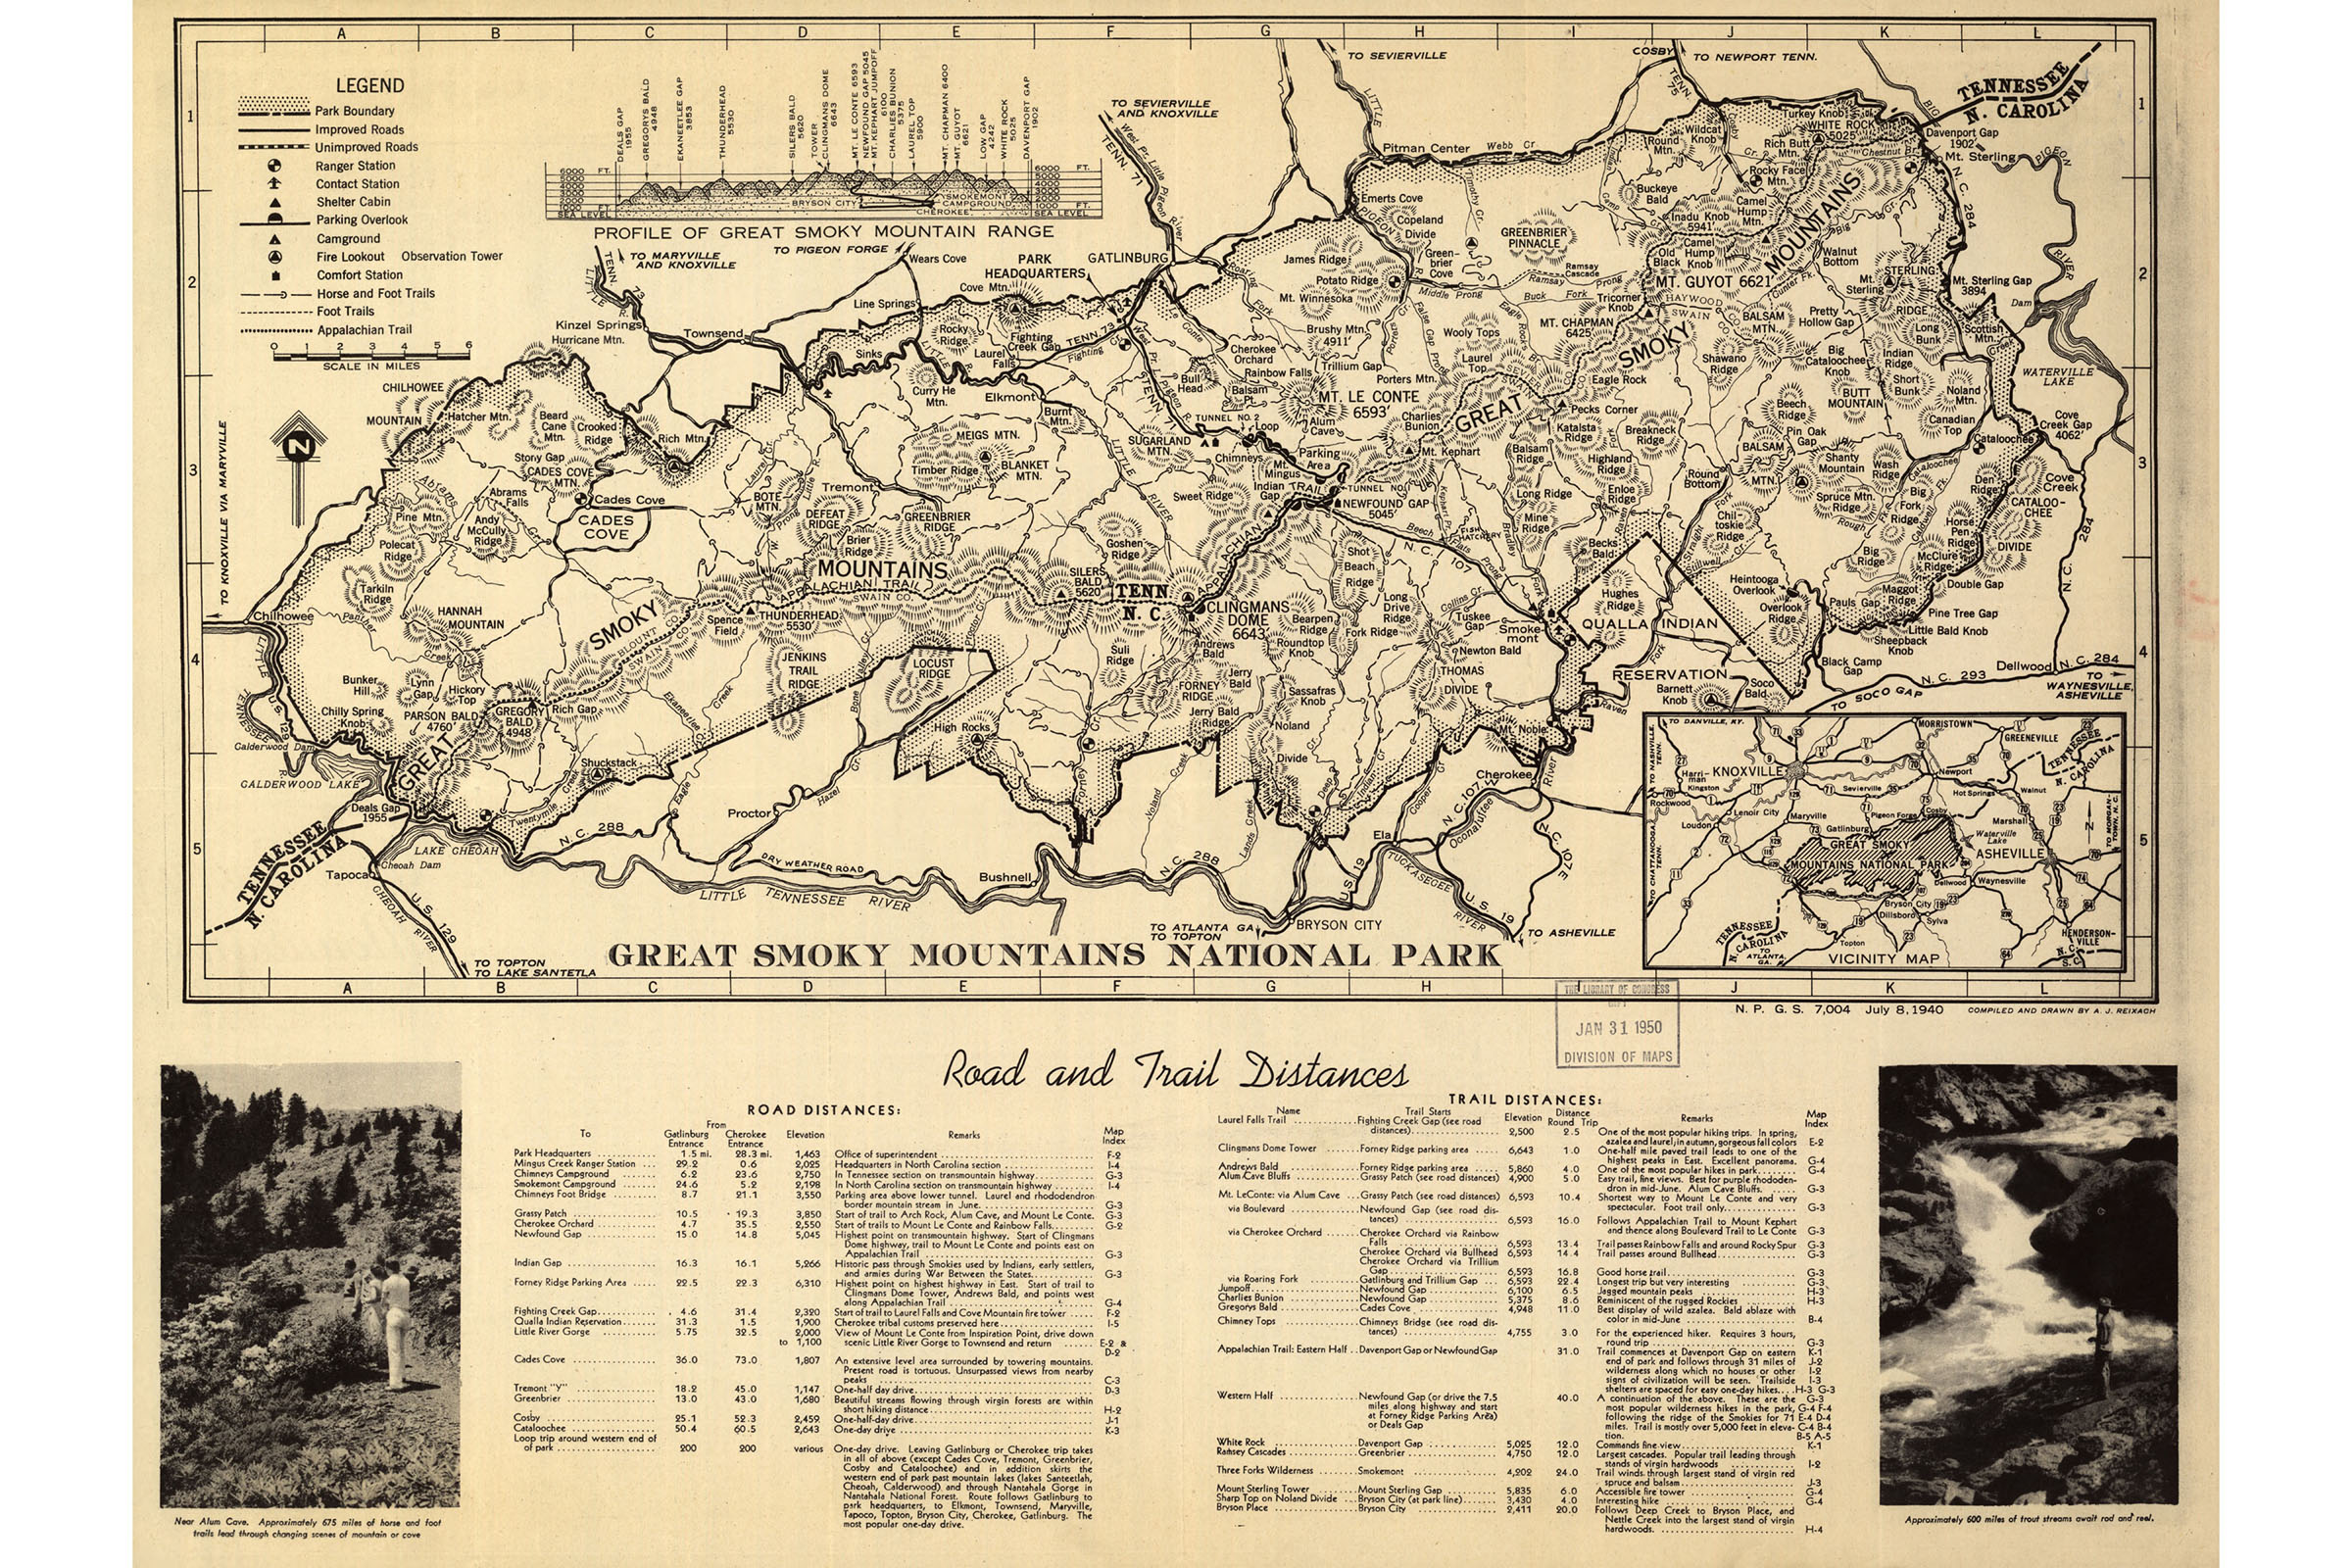 Details about Map Of Great Smoky Mountains National Park; Antique Map, on map of the ozarks, map of great smoky mountains in tennessee, map of the grand canyon, map of the sequoia national park, map of the cumberland plateau, map of the adirondack park, map of the university of virginia, map of the smoky mtns,